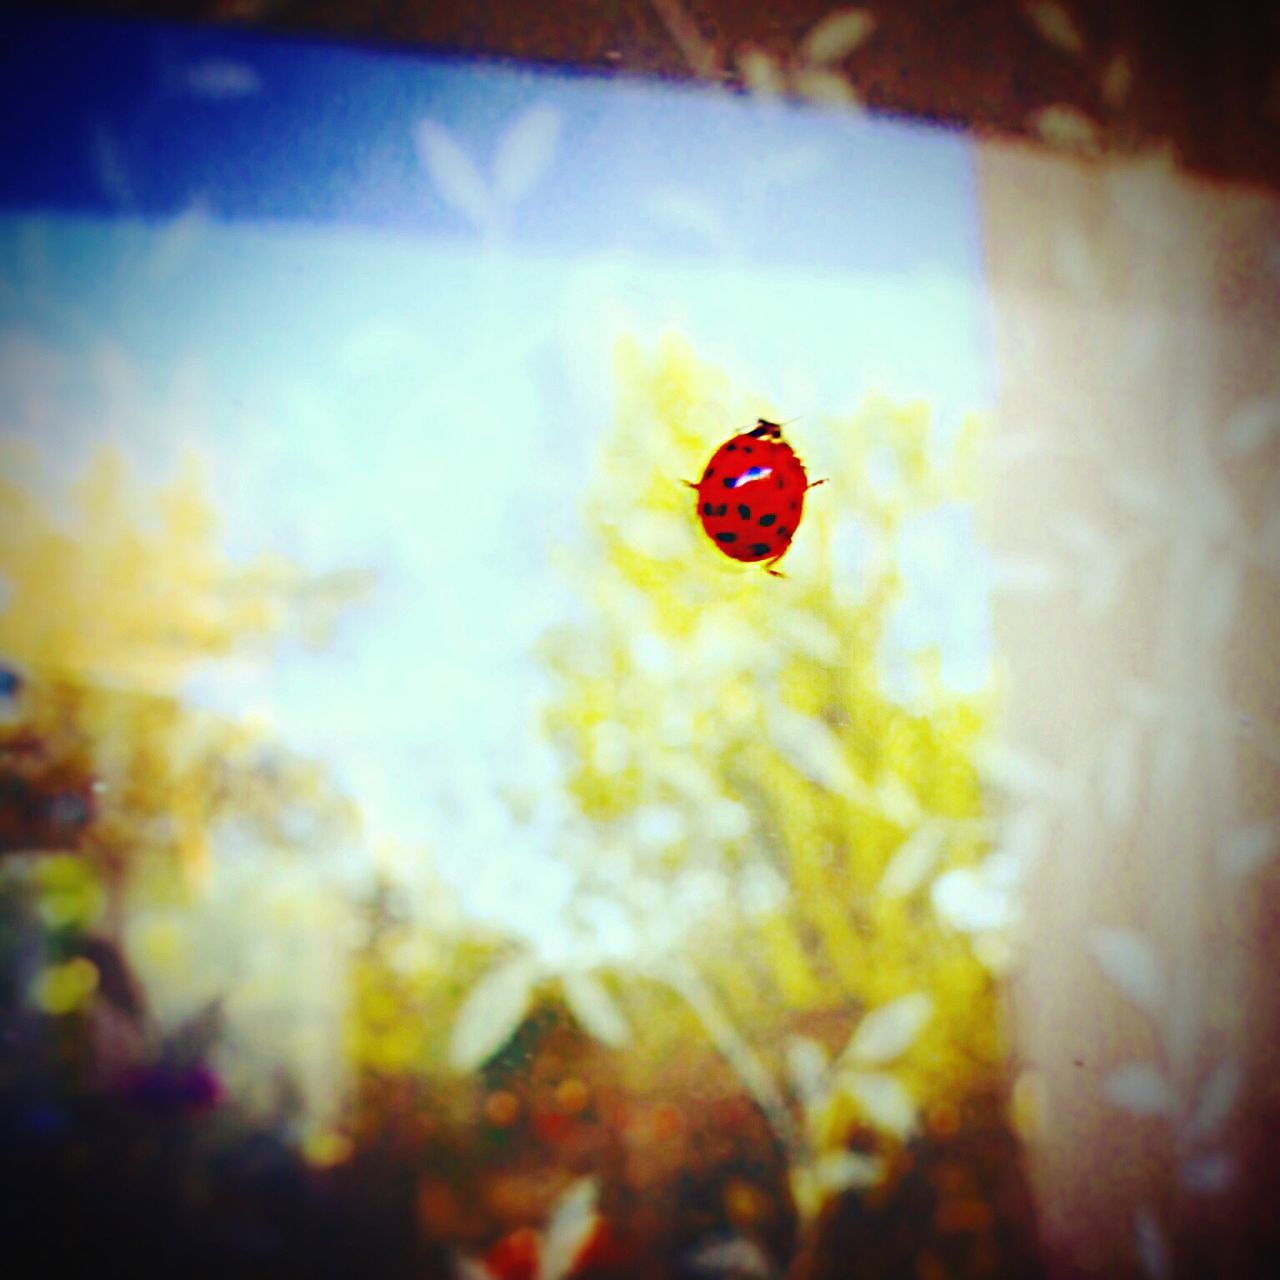 Ladybug Red Day Nature Outdoors Vibrant Color Small Zoology Beauty In Nature Red Color Tranquility No People Tiny Ladybird Outdoor Photography Ladybeetle Ladies  Bugs Beetle Colors And Patterns Nature Photography Focus On Foreground Balcony View Balcony Shot